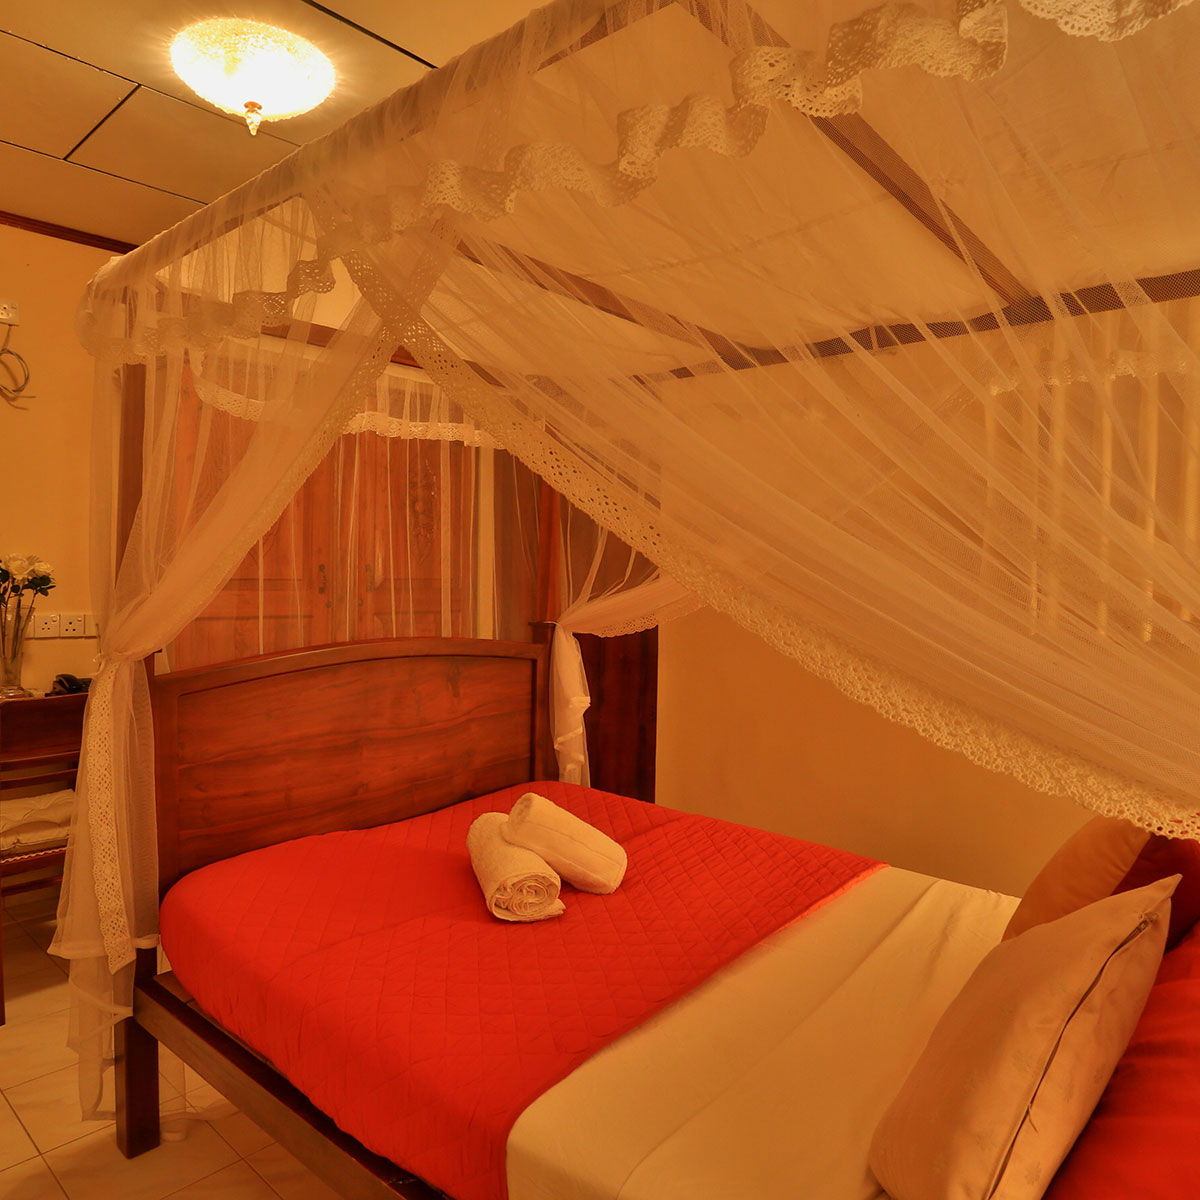 Guest Houses in Negombo - Negombo Hotels and Guest Houses - Boutique Hotels in Negombo - Hotels in Negombo - Negombo Boutique Hotels and Guest Houses - Luxury Home Stays in Negombo - Negombo Luxury Boutique Home stays and Guest Houses